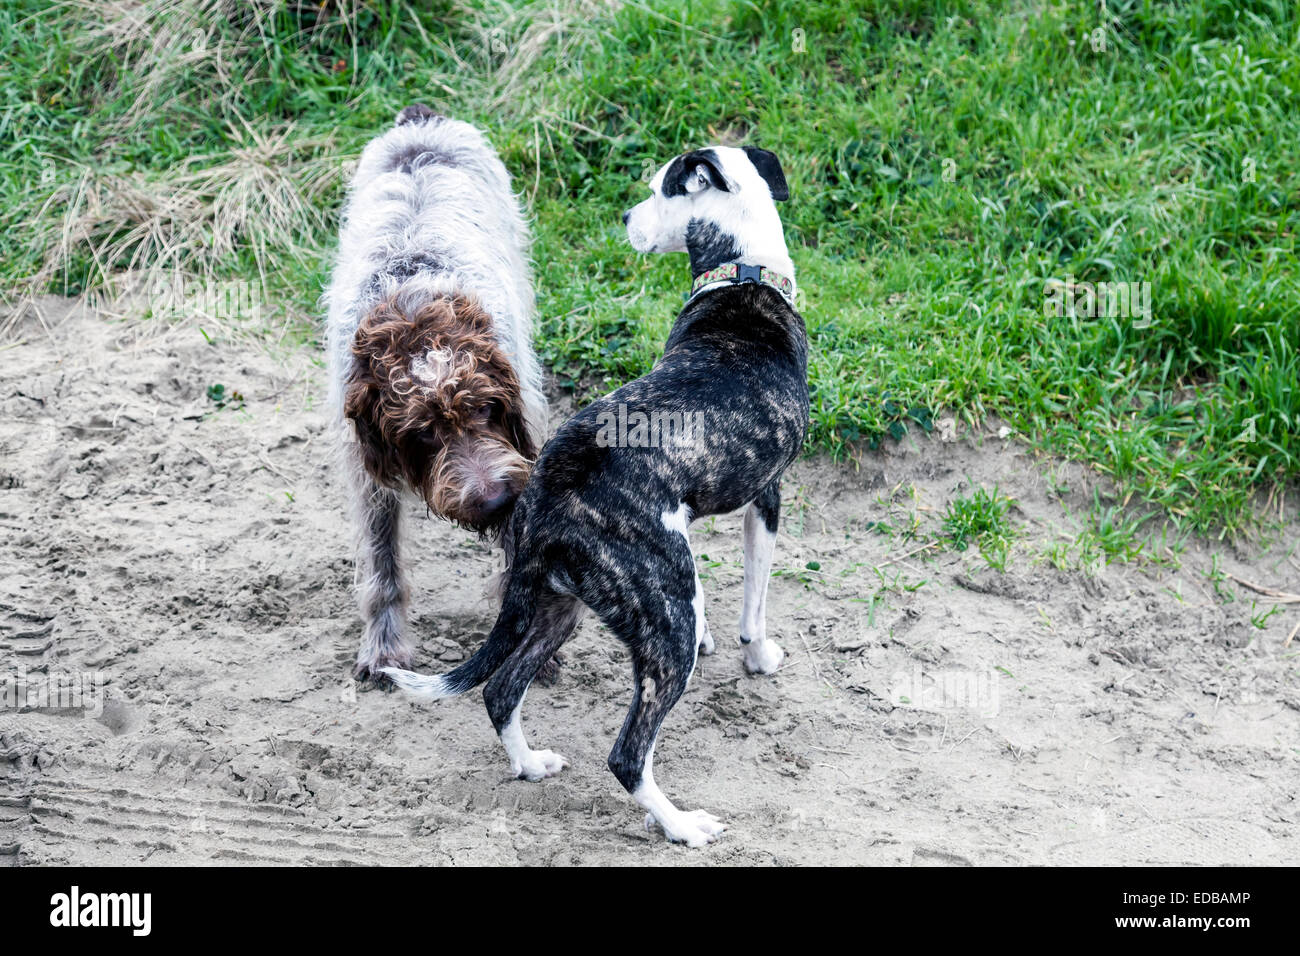 Griffon Dog Stock Photos & Griffon Dog Stock Images - Alamy